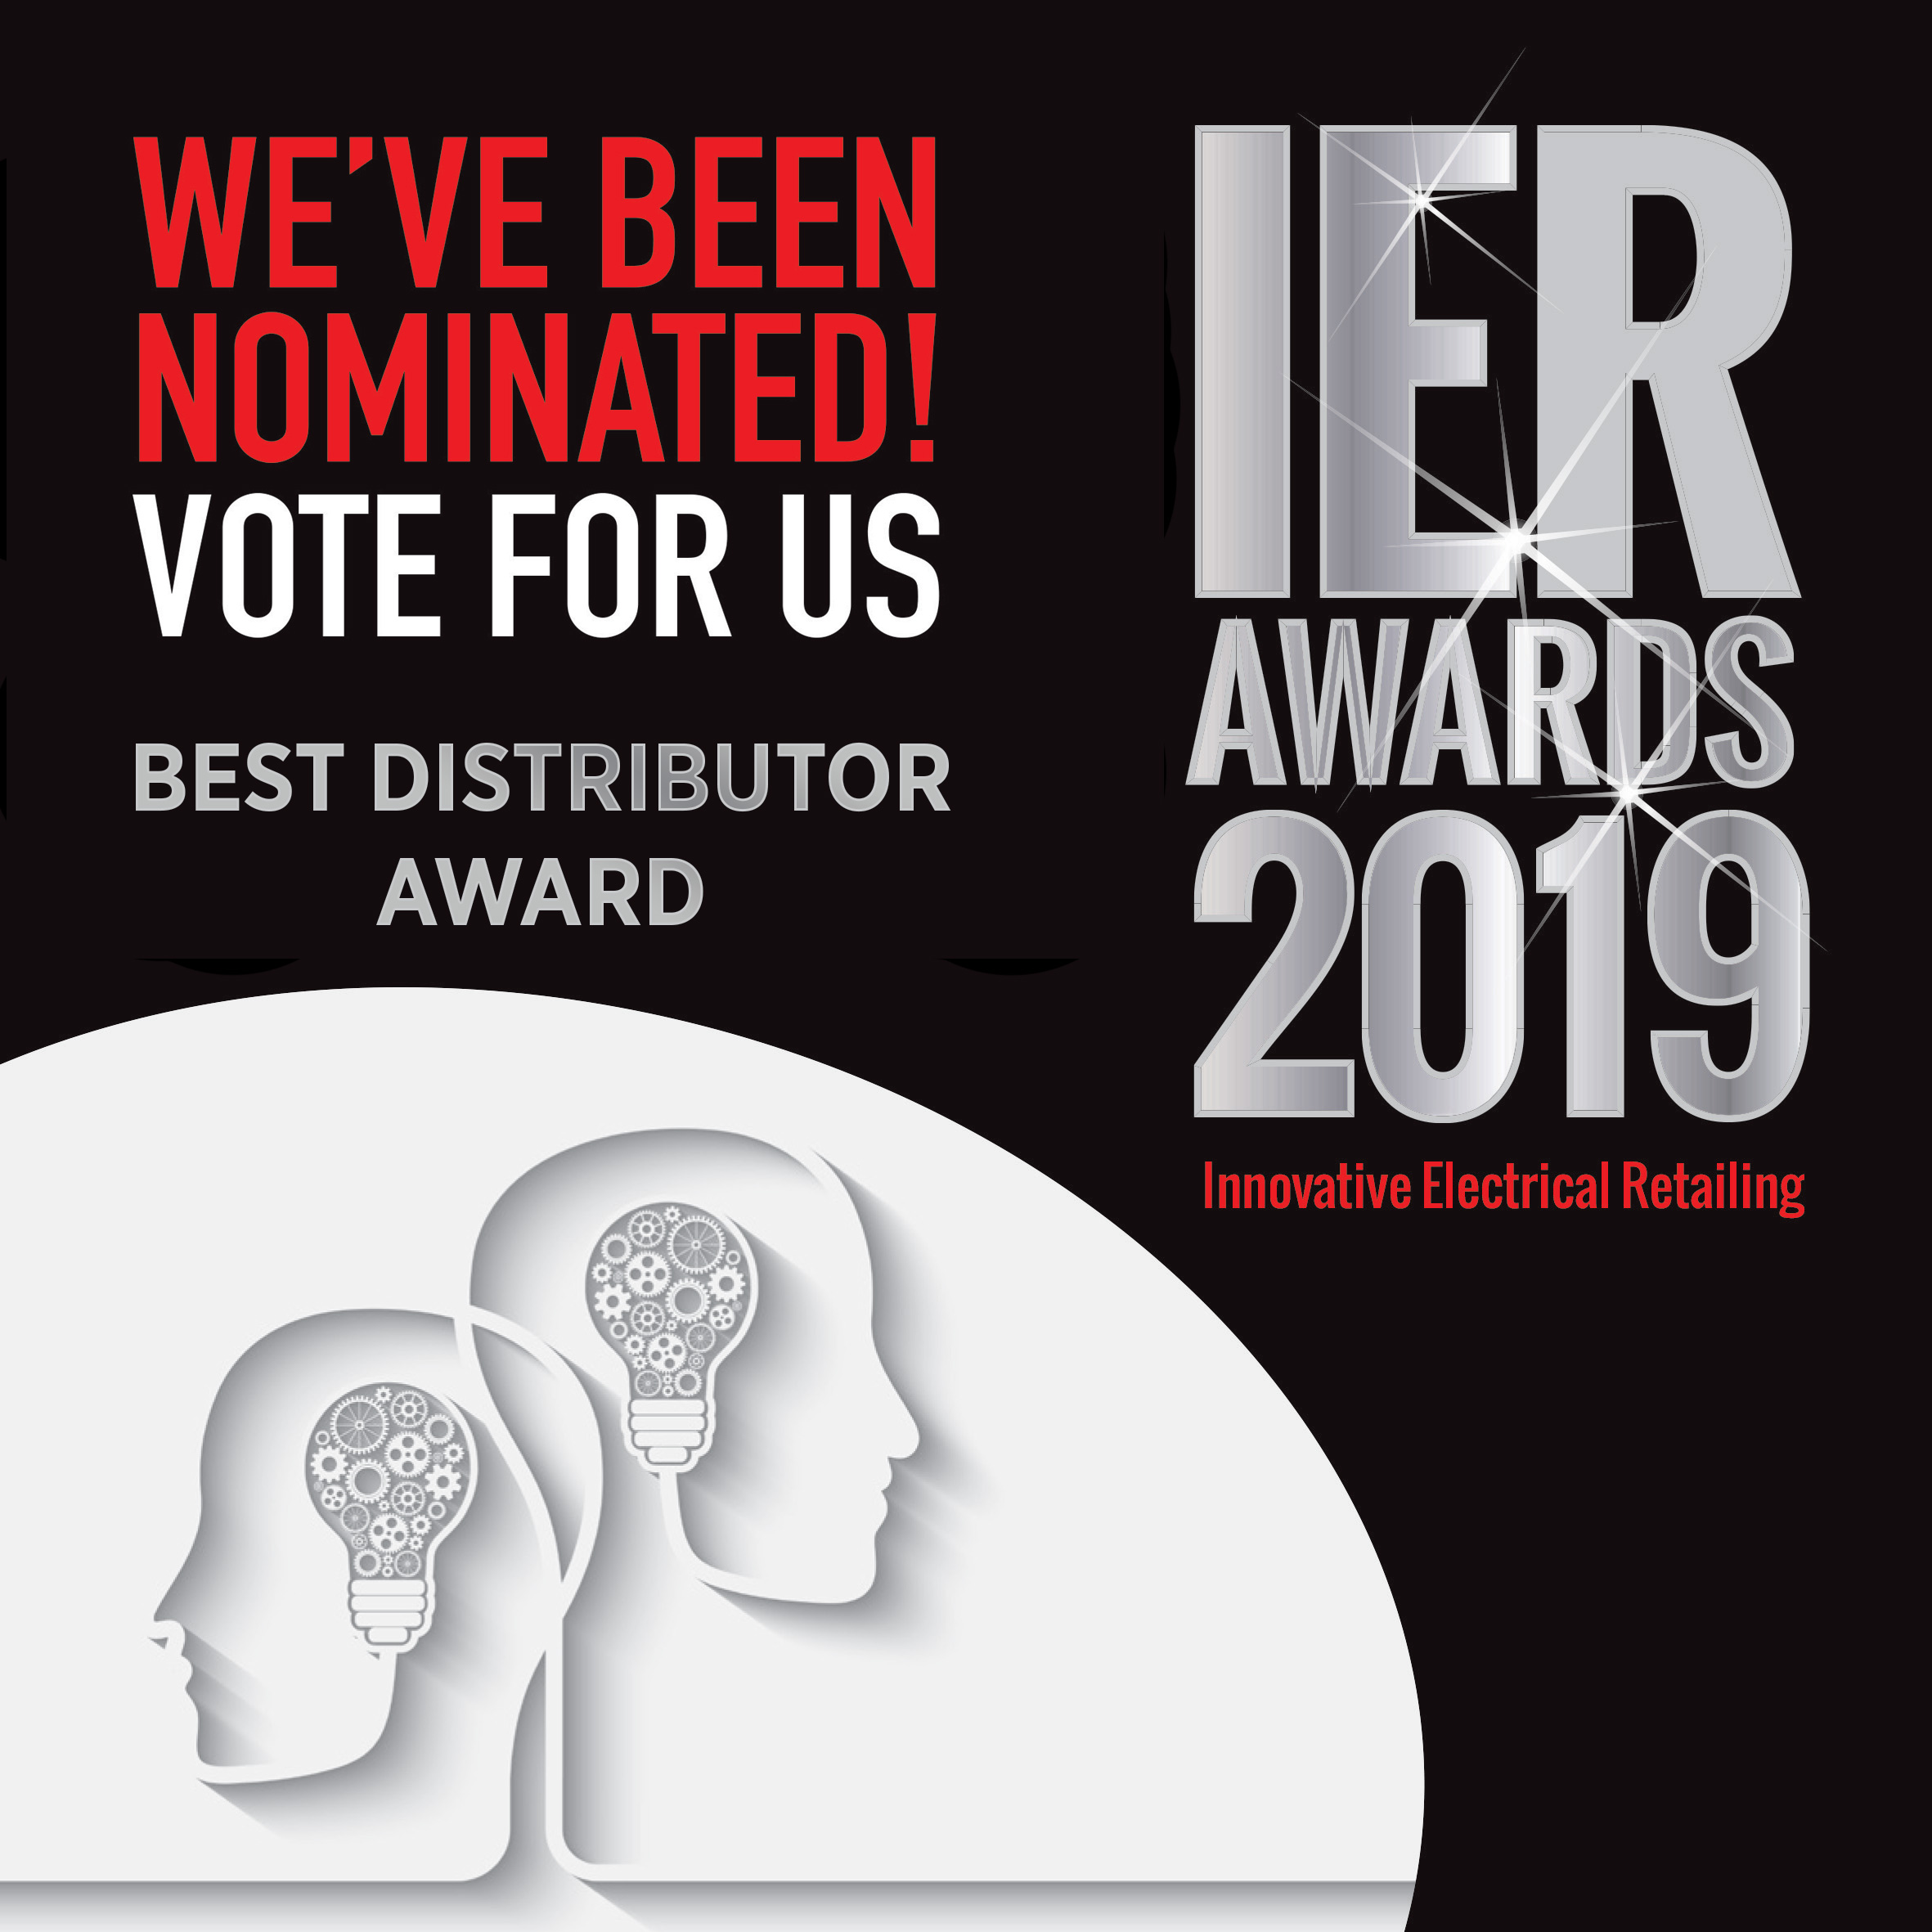 IER-Awards-2019-Nominated-logo_BestDistributor